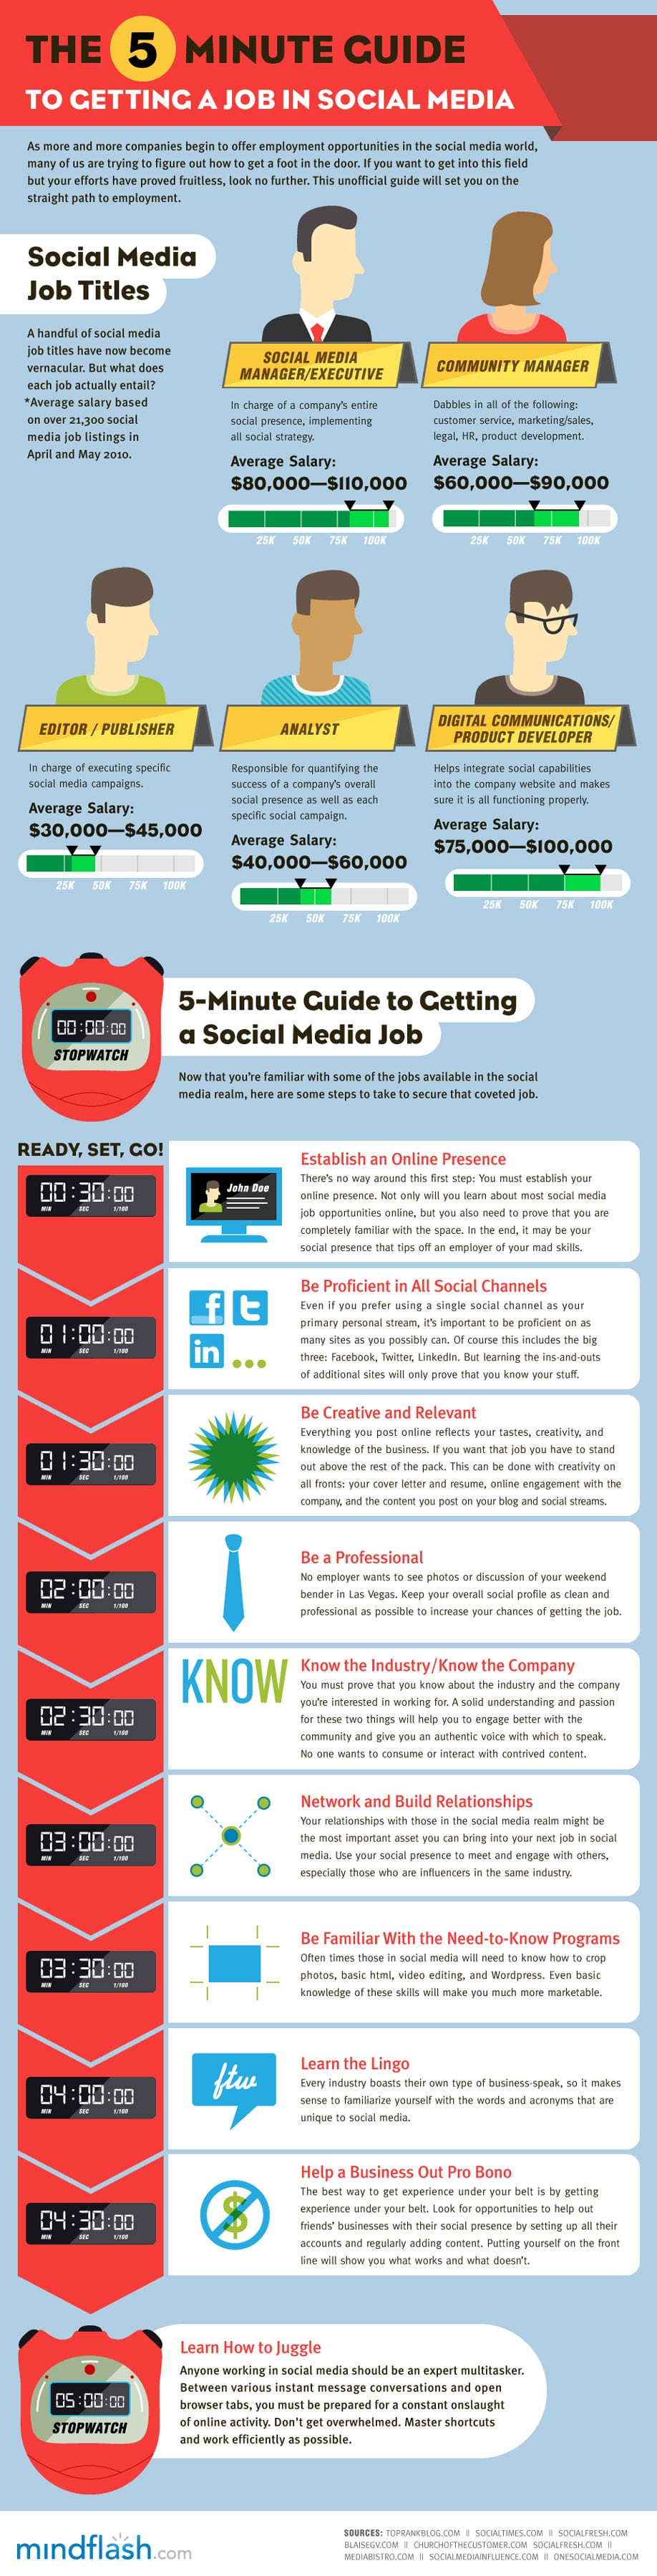 5 Minute Guide To Scoring A Job In Social Media [Infographic]